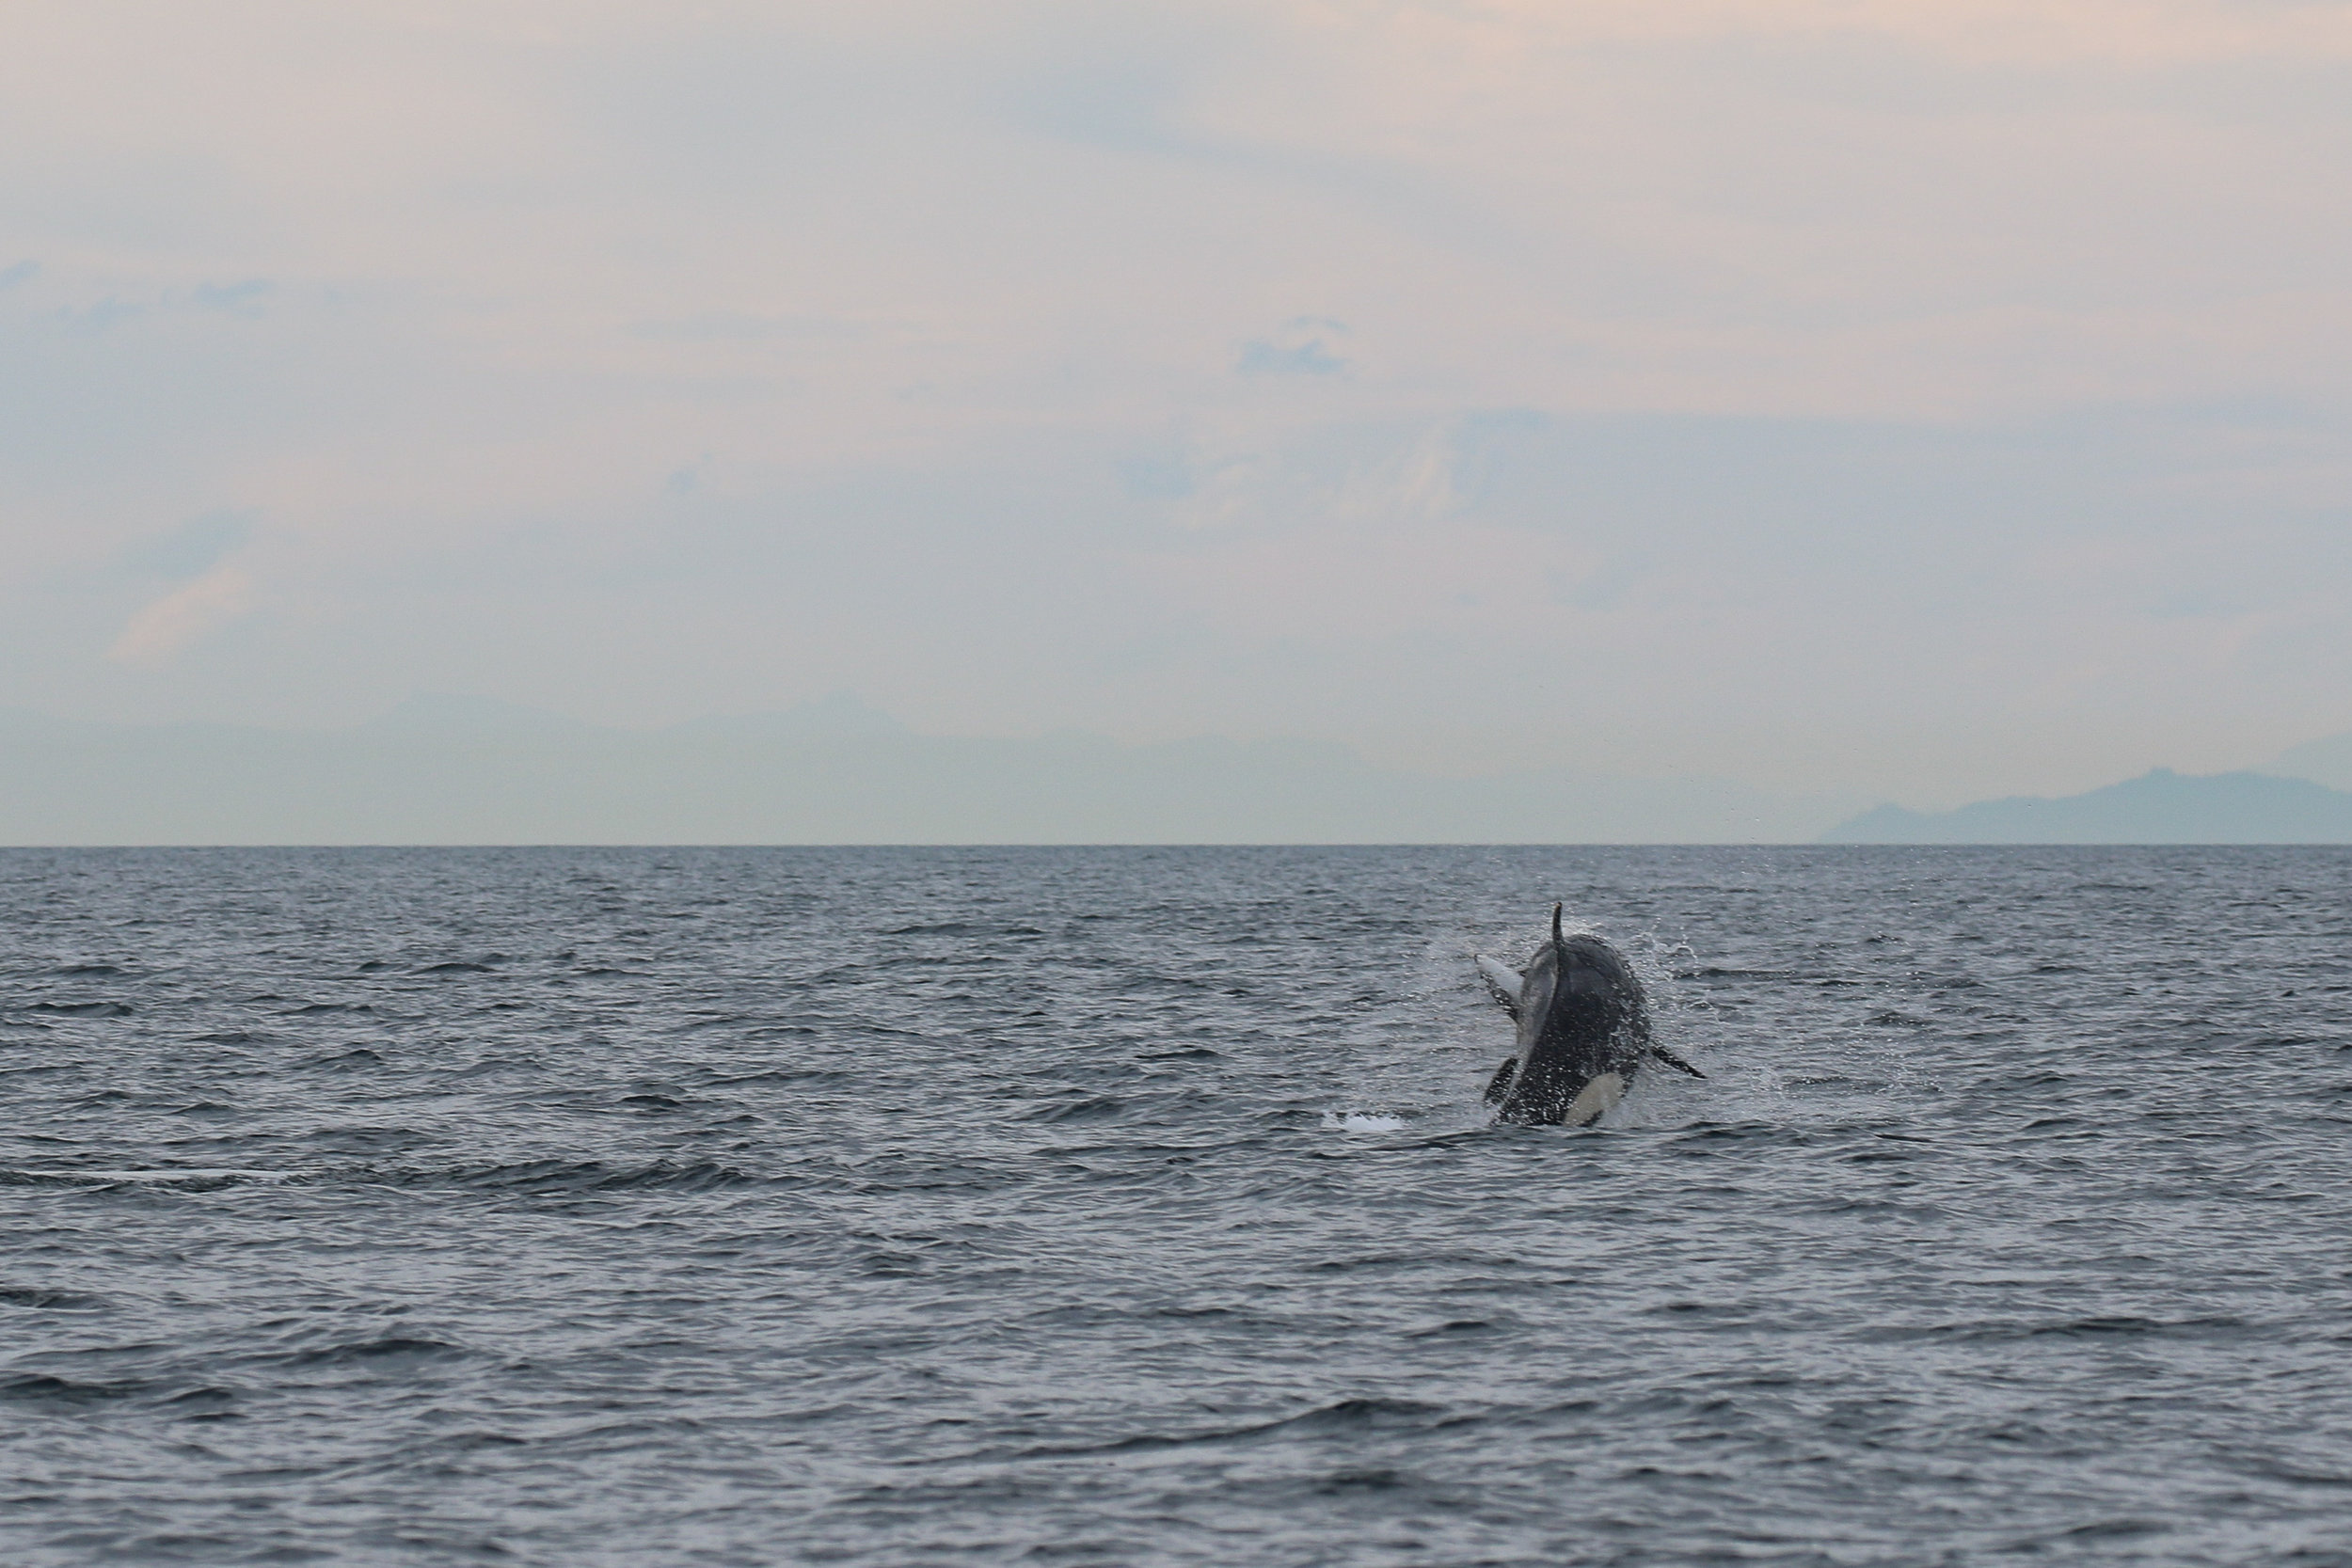 Orca with a porpoise in it's mouth! Photo by Rodrigo (3:30)